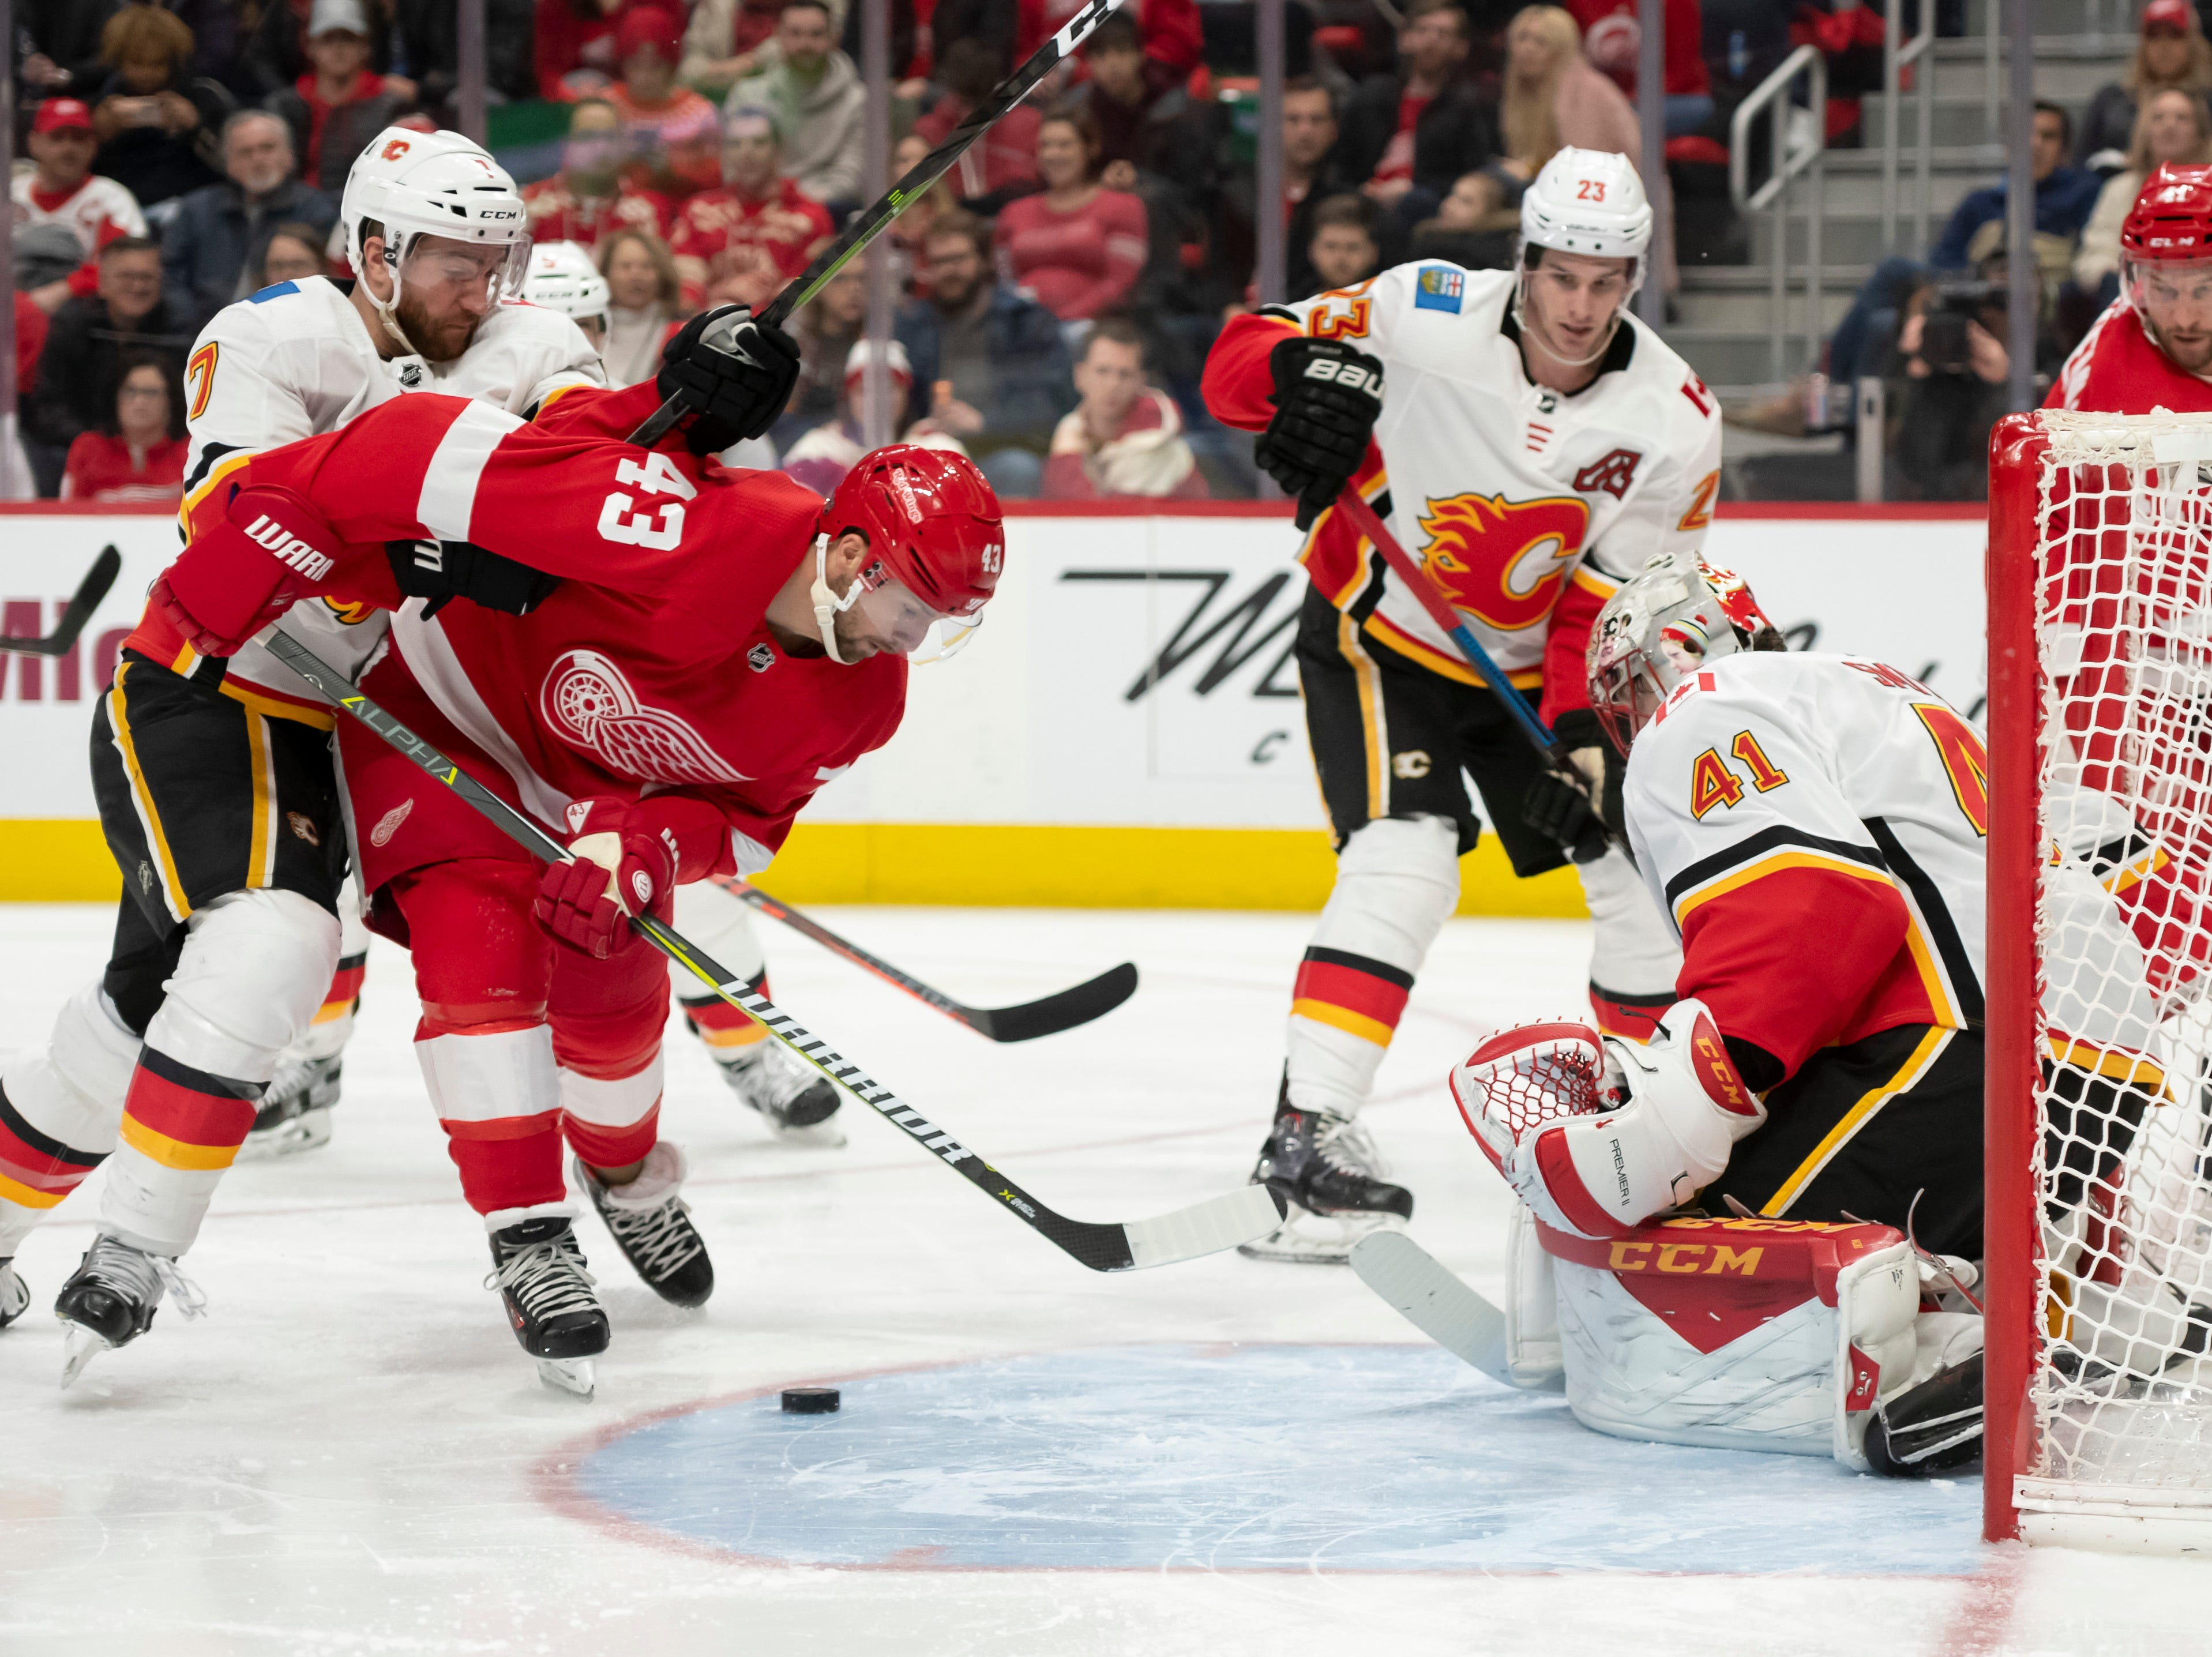 Detroit center Darren Helm tries to get the puck past Calgary goaltender Mike Smith in the third period.